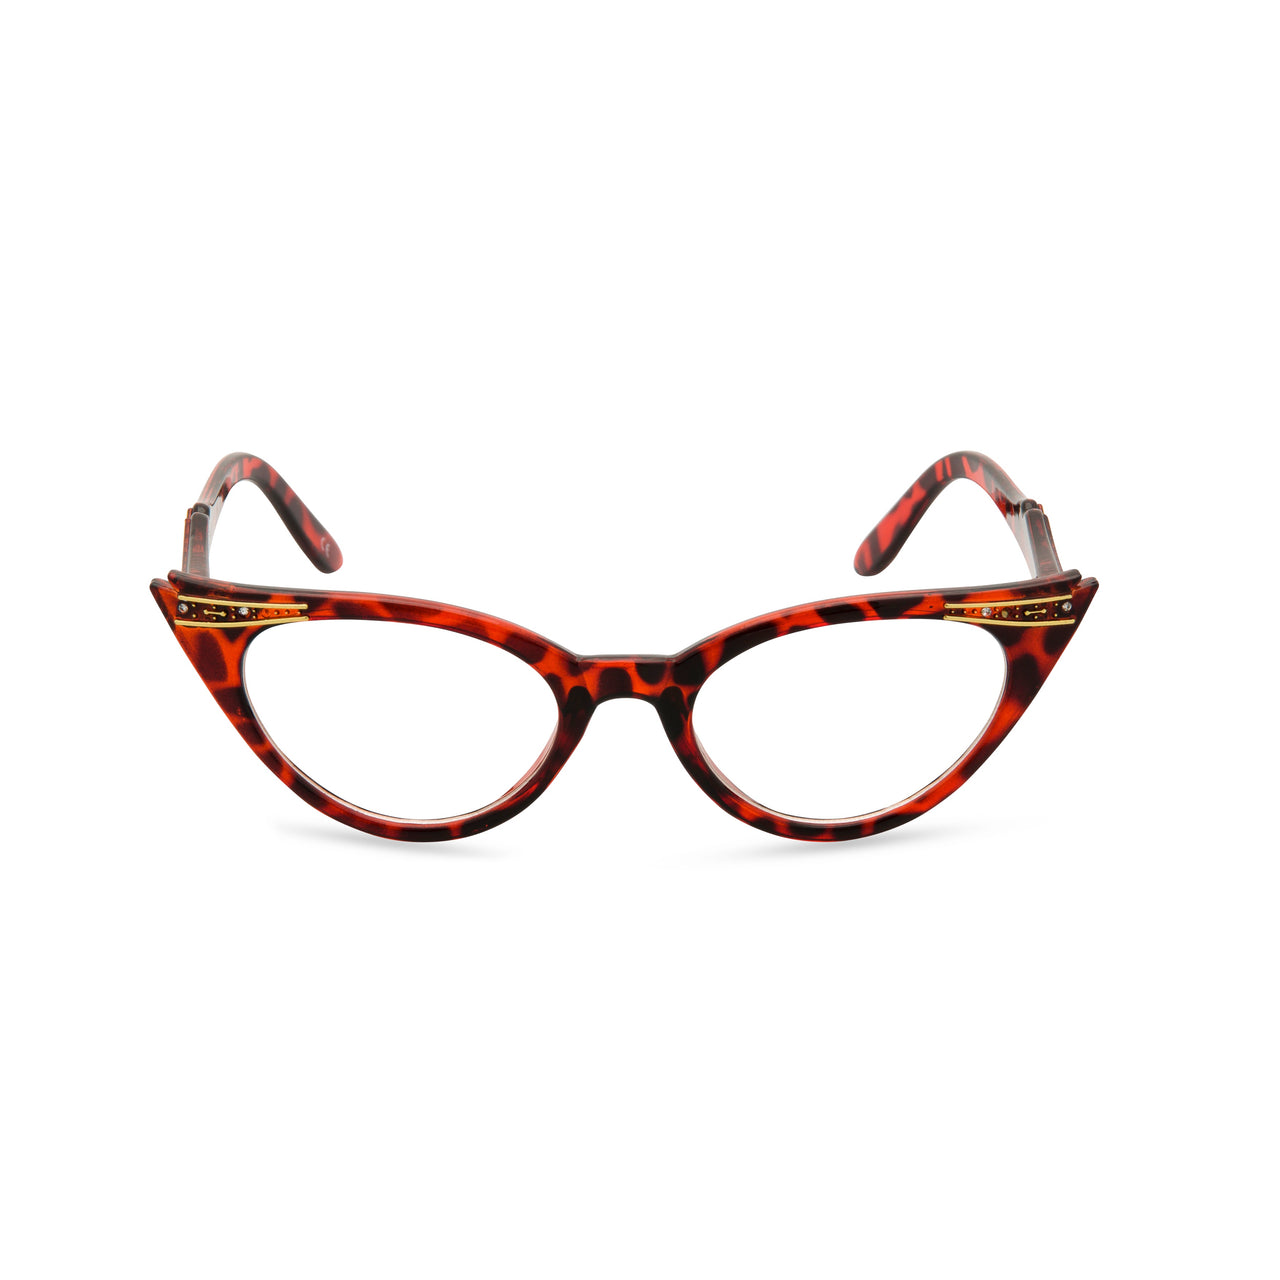 Retropeepers Betty cat eye glasses tortoiseshell - front view